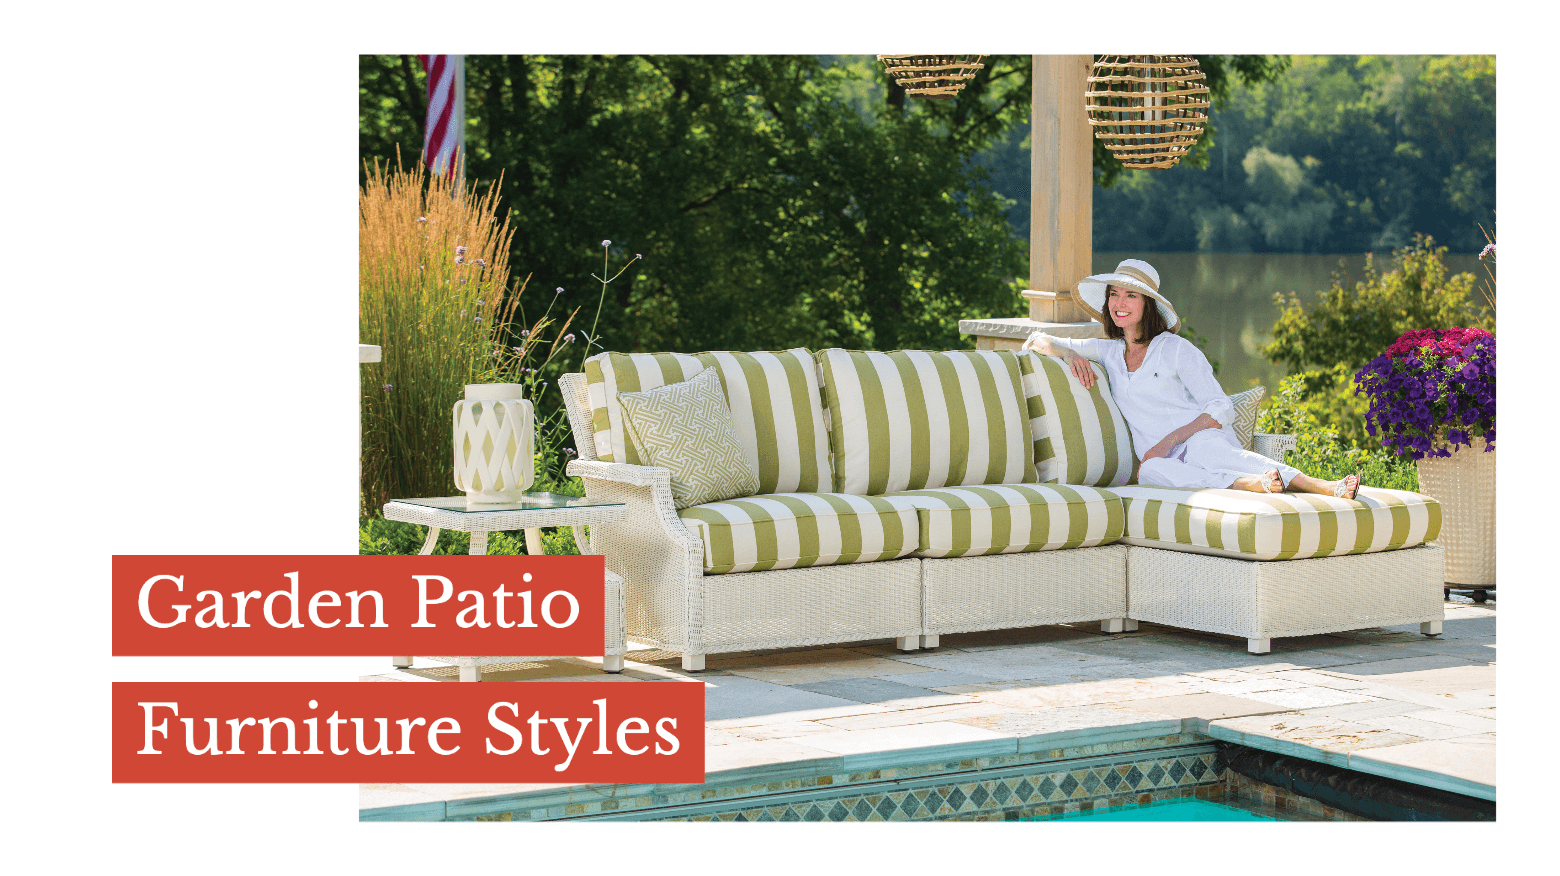 Garden Patio Furniture Styles